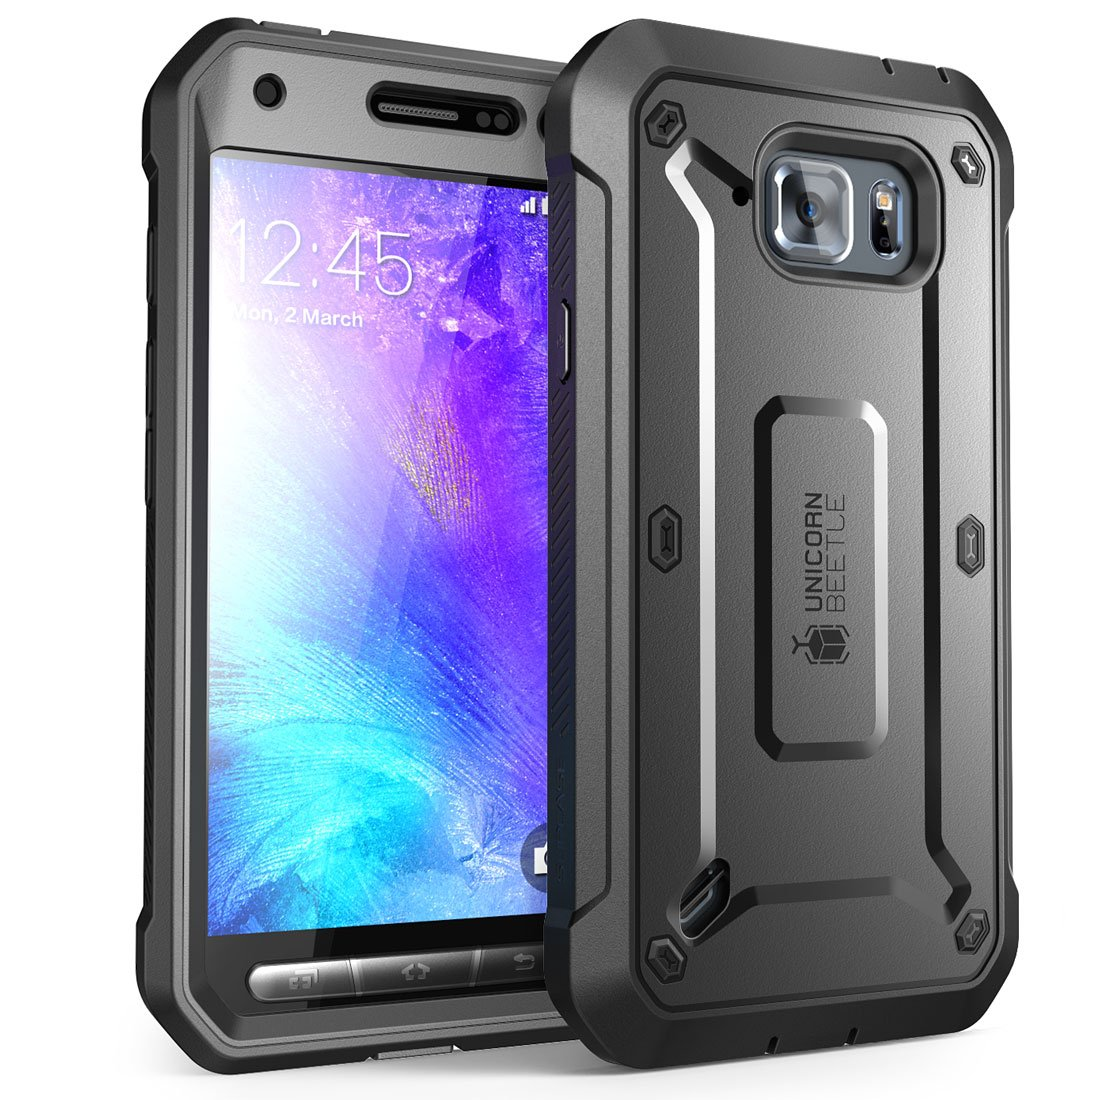 samsung s6 active cases amazon comsupcase galaxy s6 active case, unicorn beetle pro series full body rugged holster case